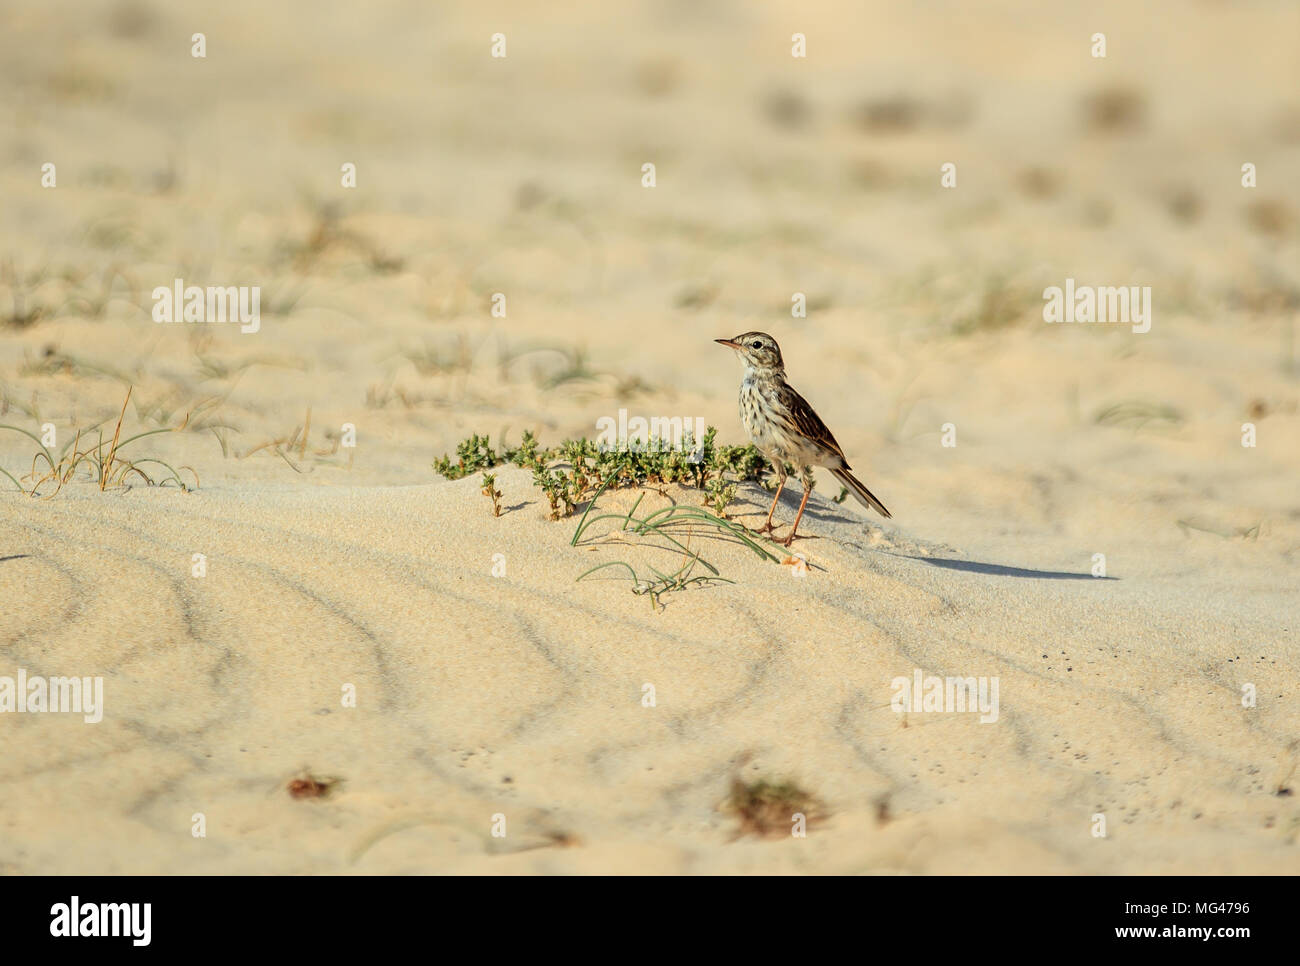 The Berthelot's pipit is a small passerine bird which breeds in Madeira and the Canary Islands. - Stock Image